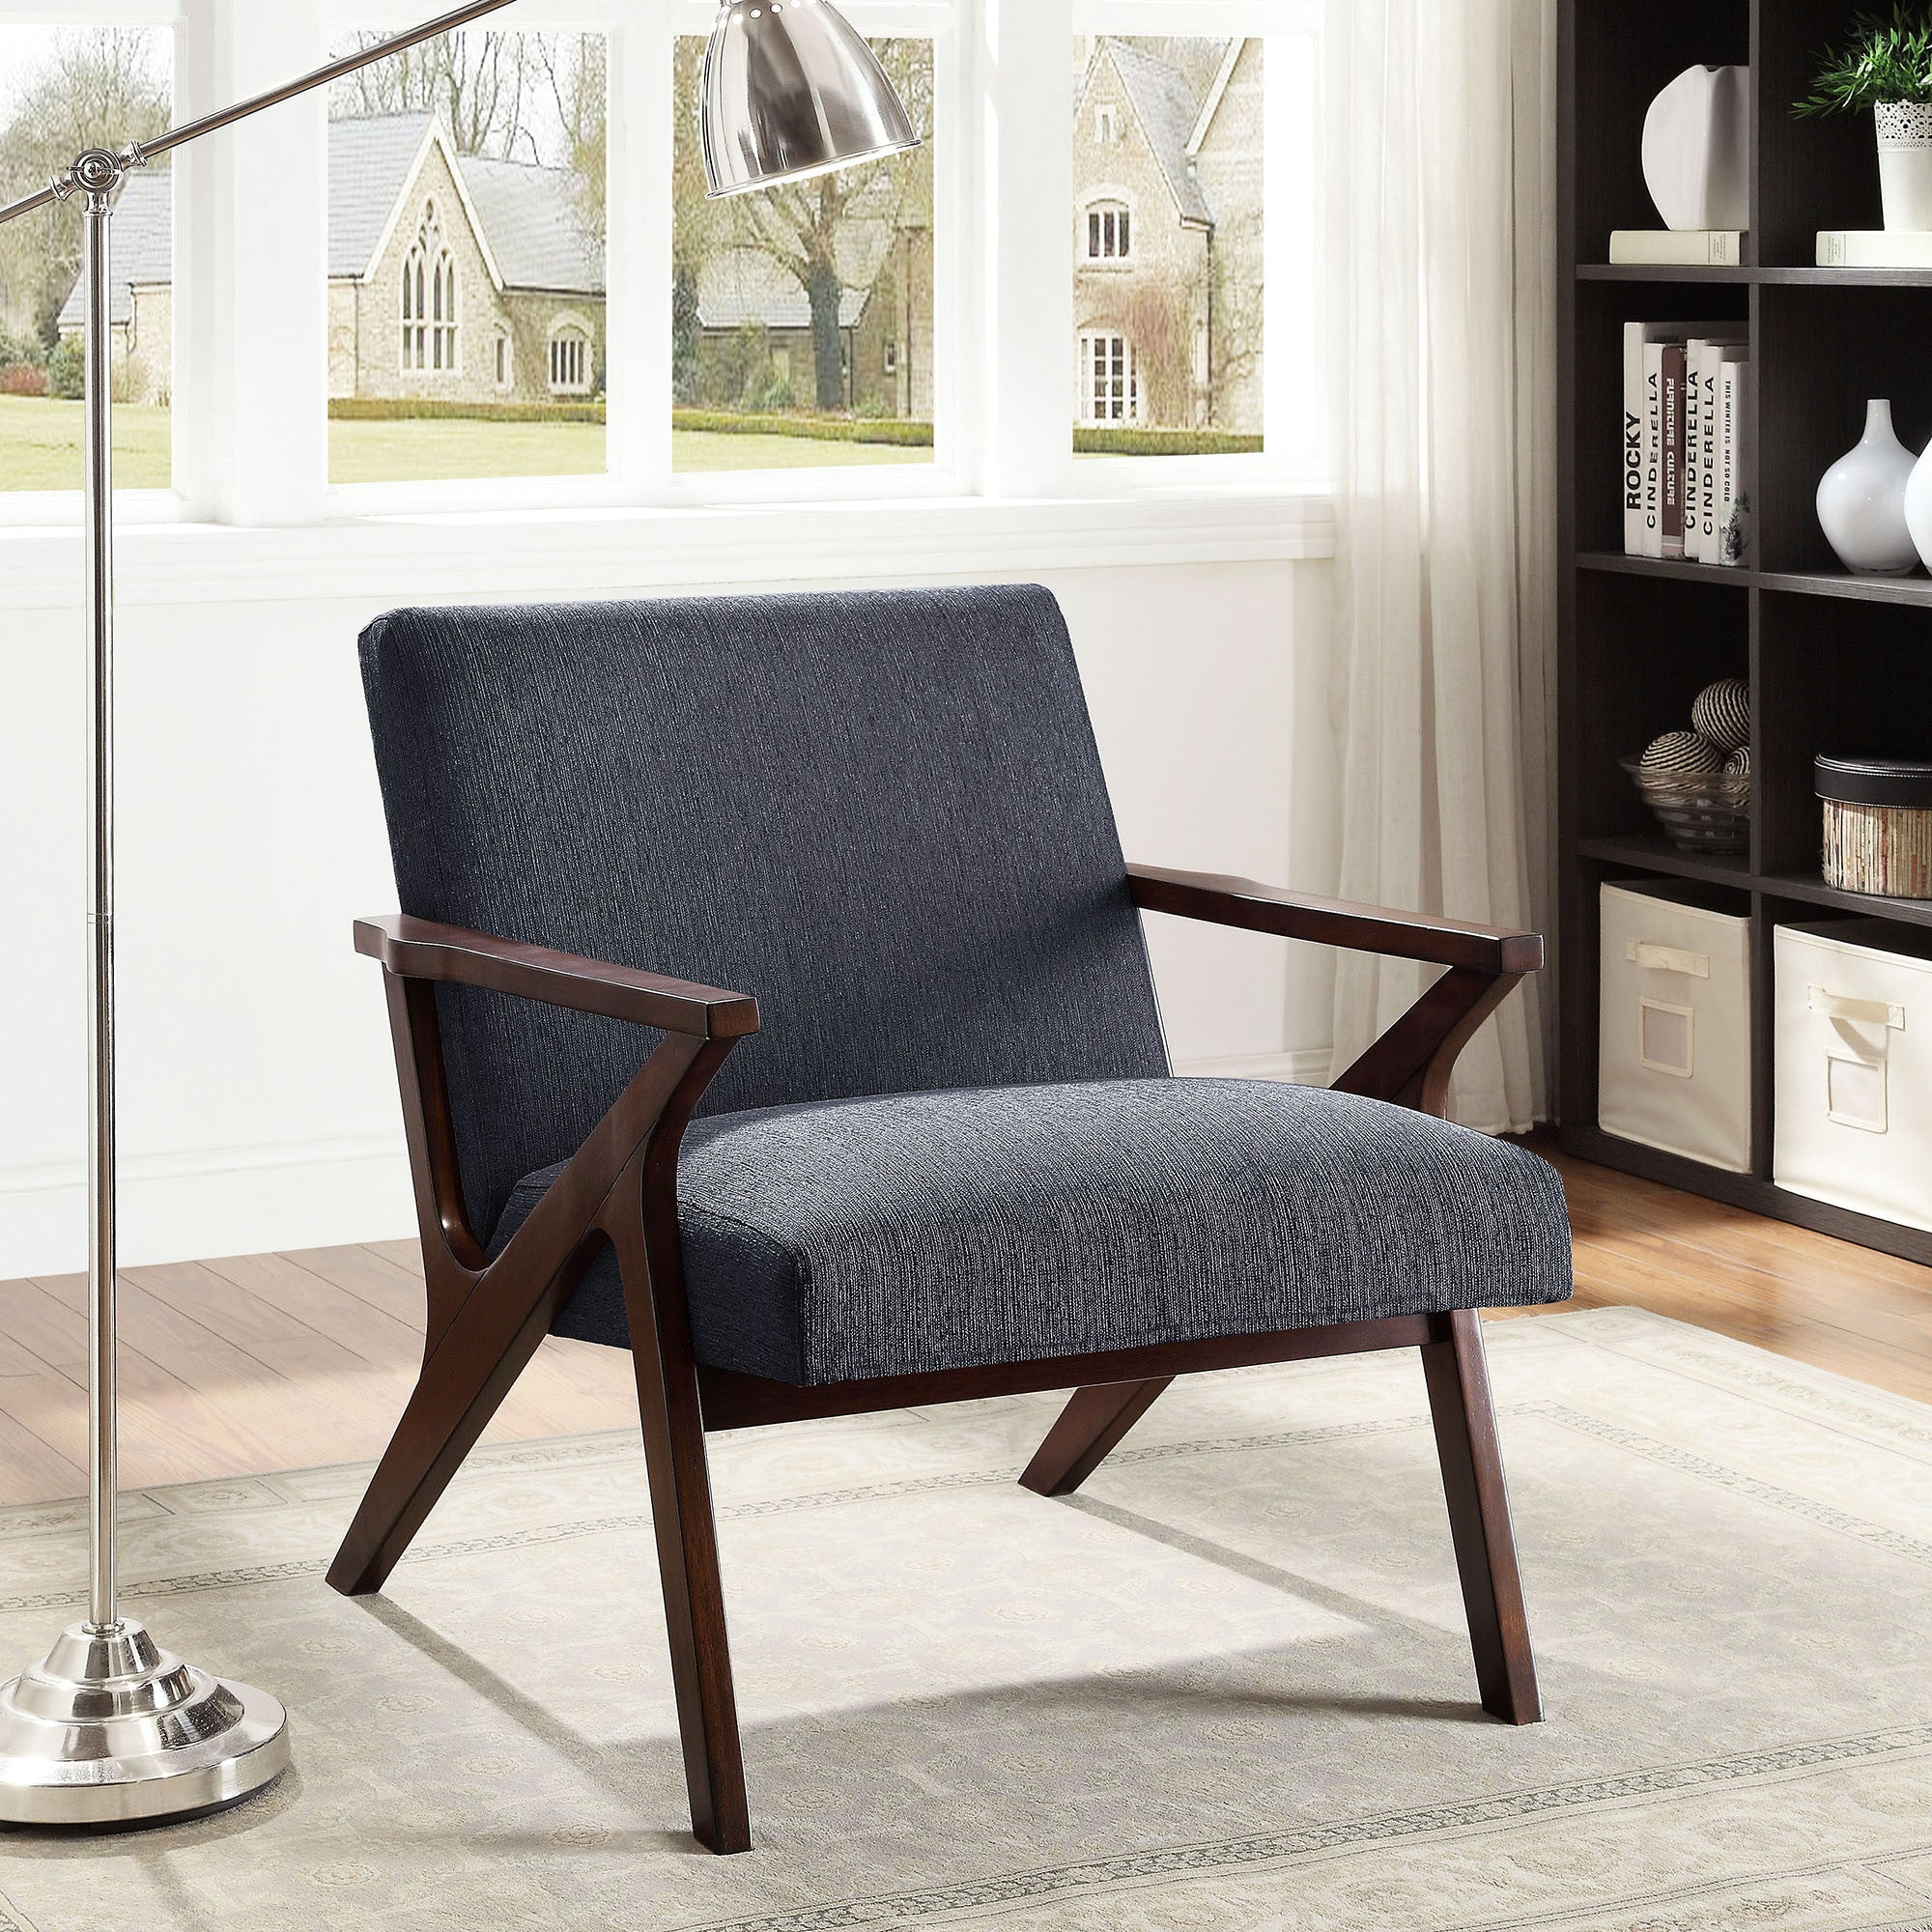 zola modern products edloe century grey chair ef accent finch co furniture mid